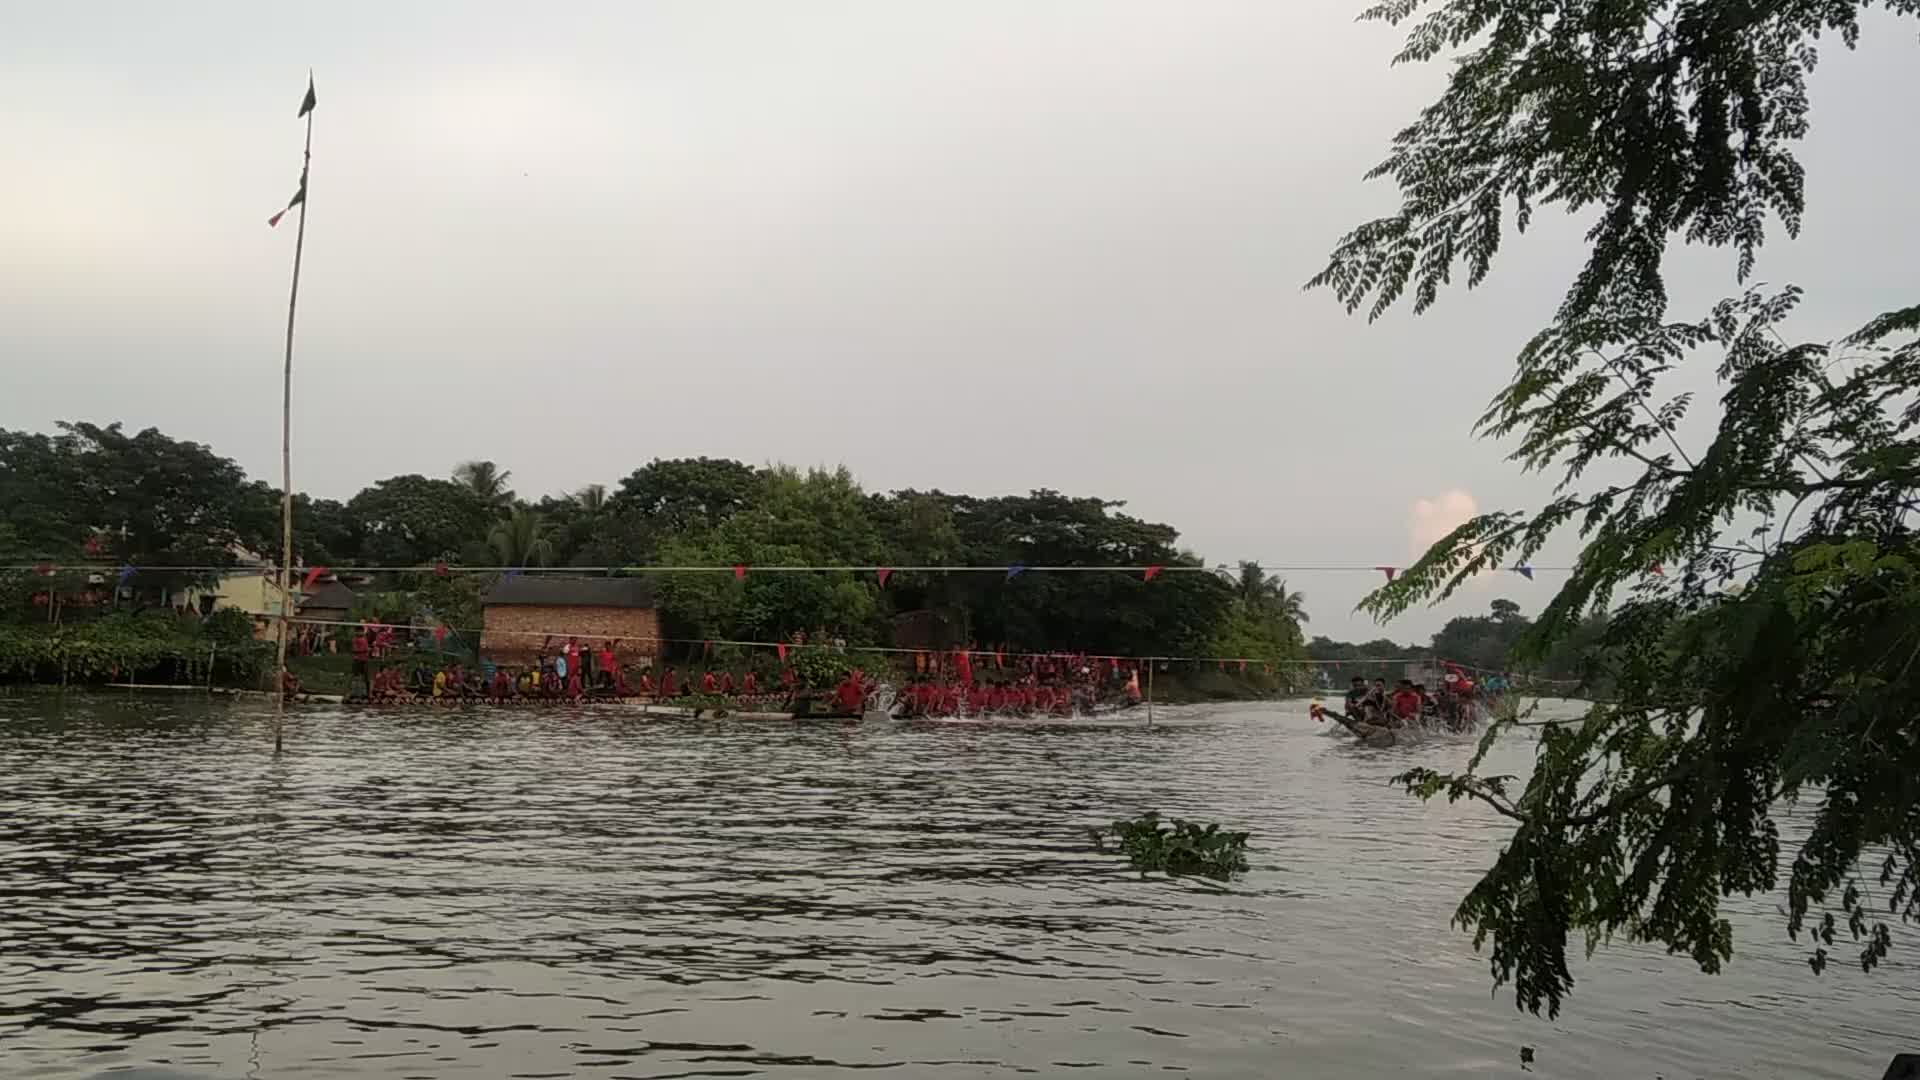 Boat racing competition